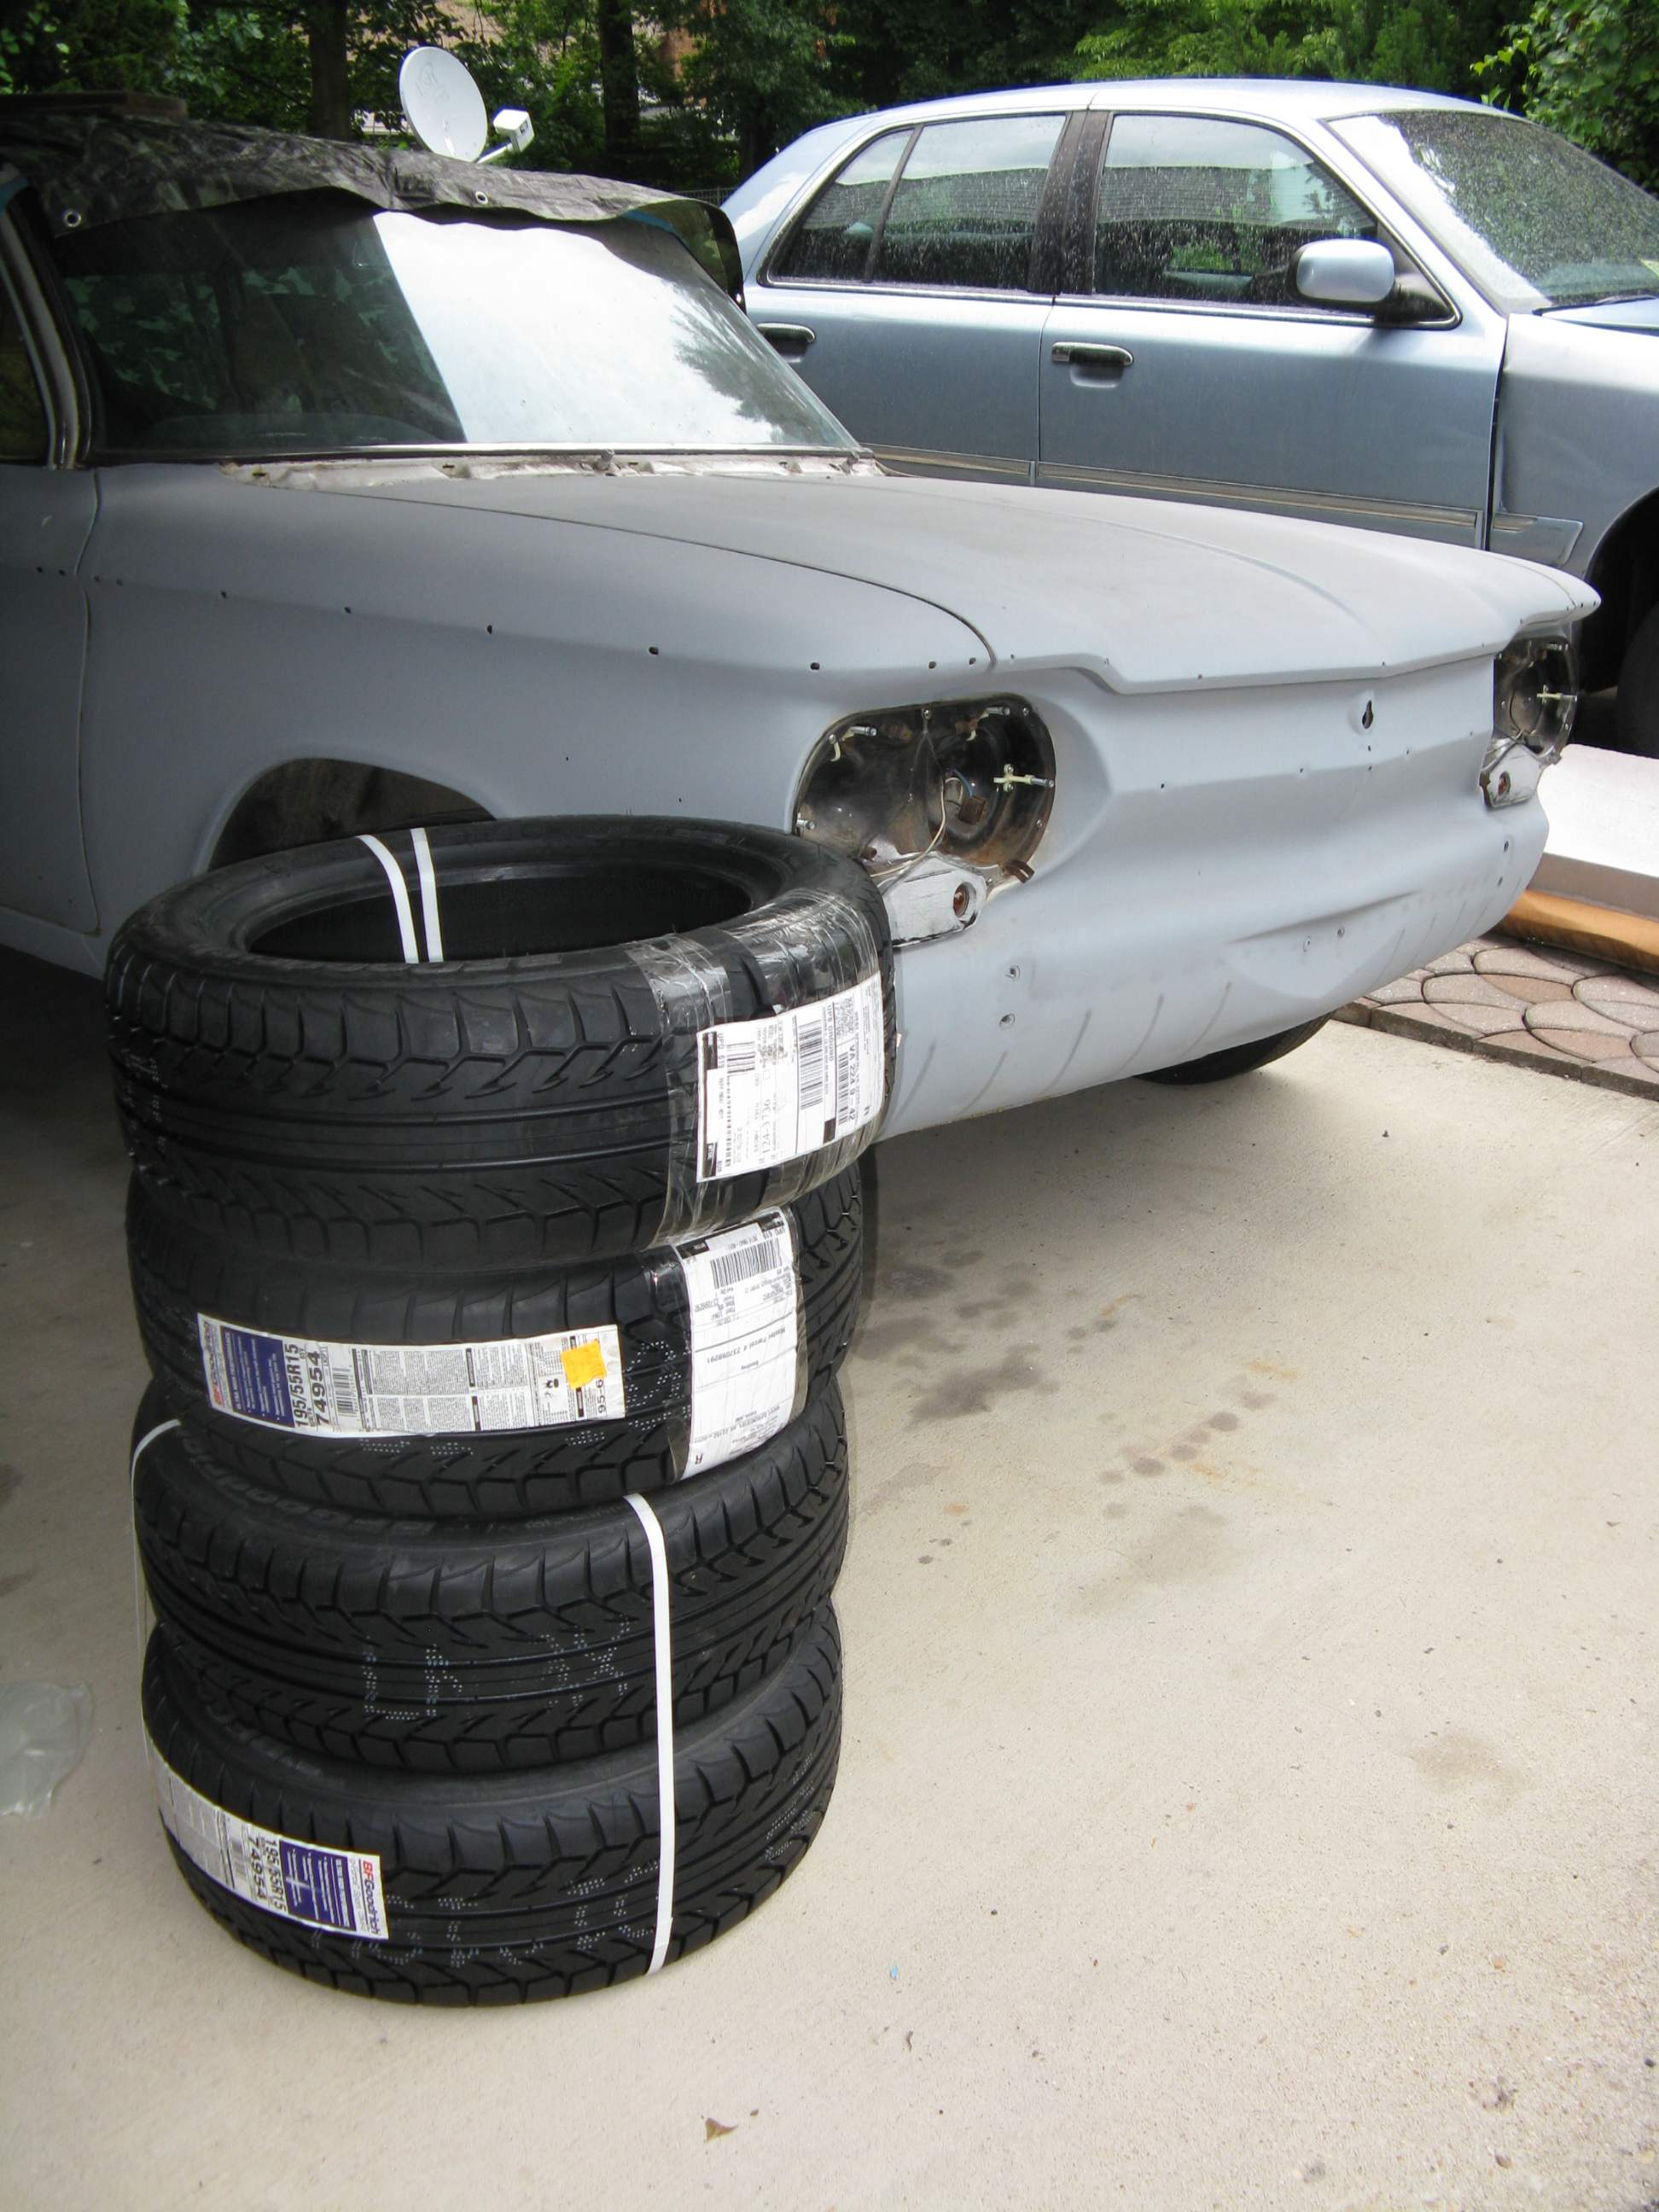 Corvair Street Autocross and Racing Wheels and Tires